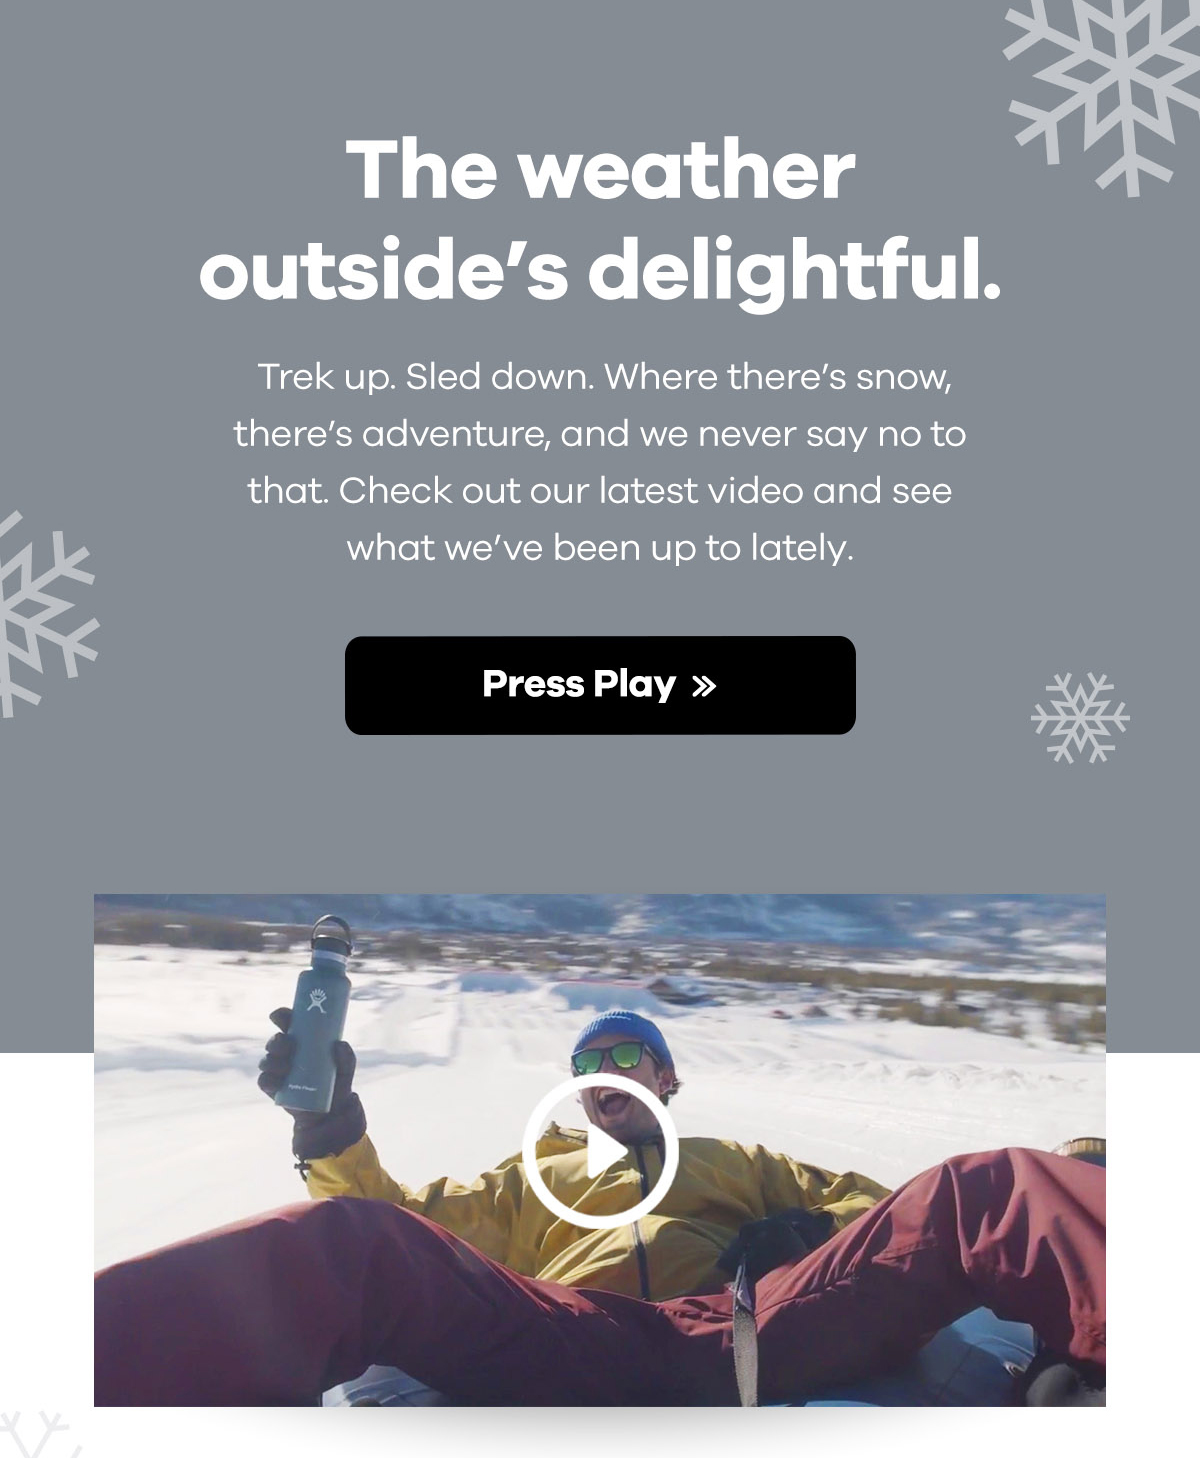 The weather outside's delightful. Trek up. Sled down. Where there's snow, there's adventure, and we never say no to that. check out our latest video and see what we've been up to lately. | Press Play >>